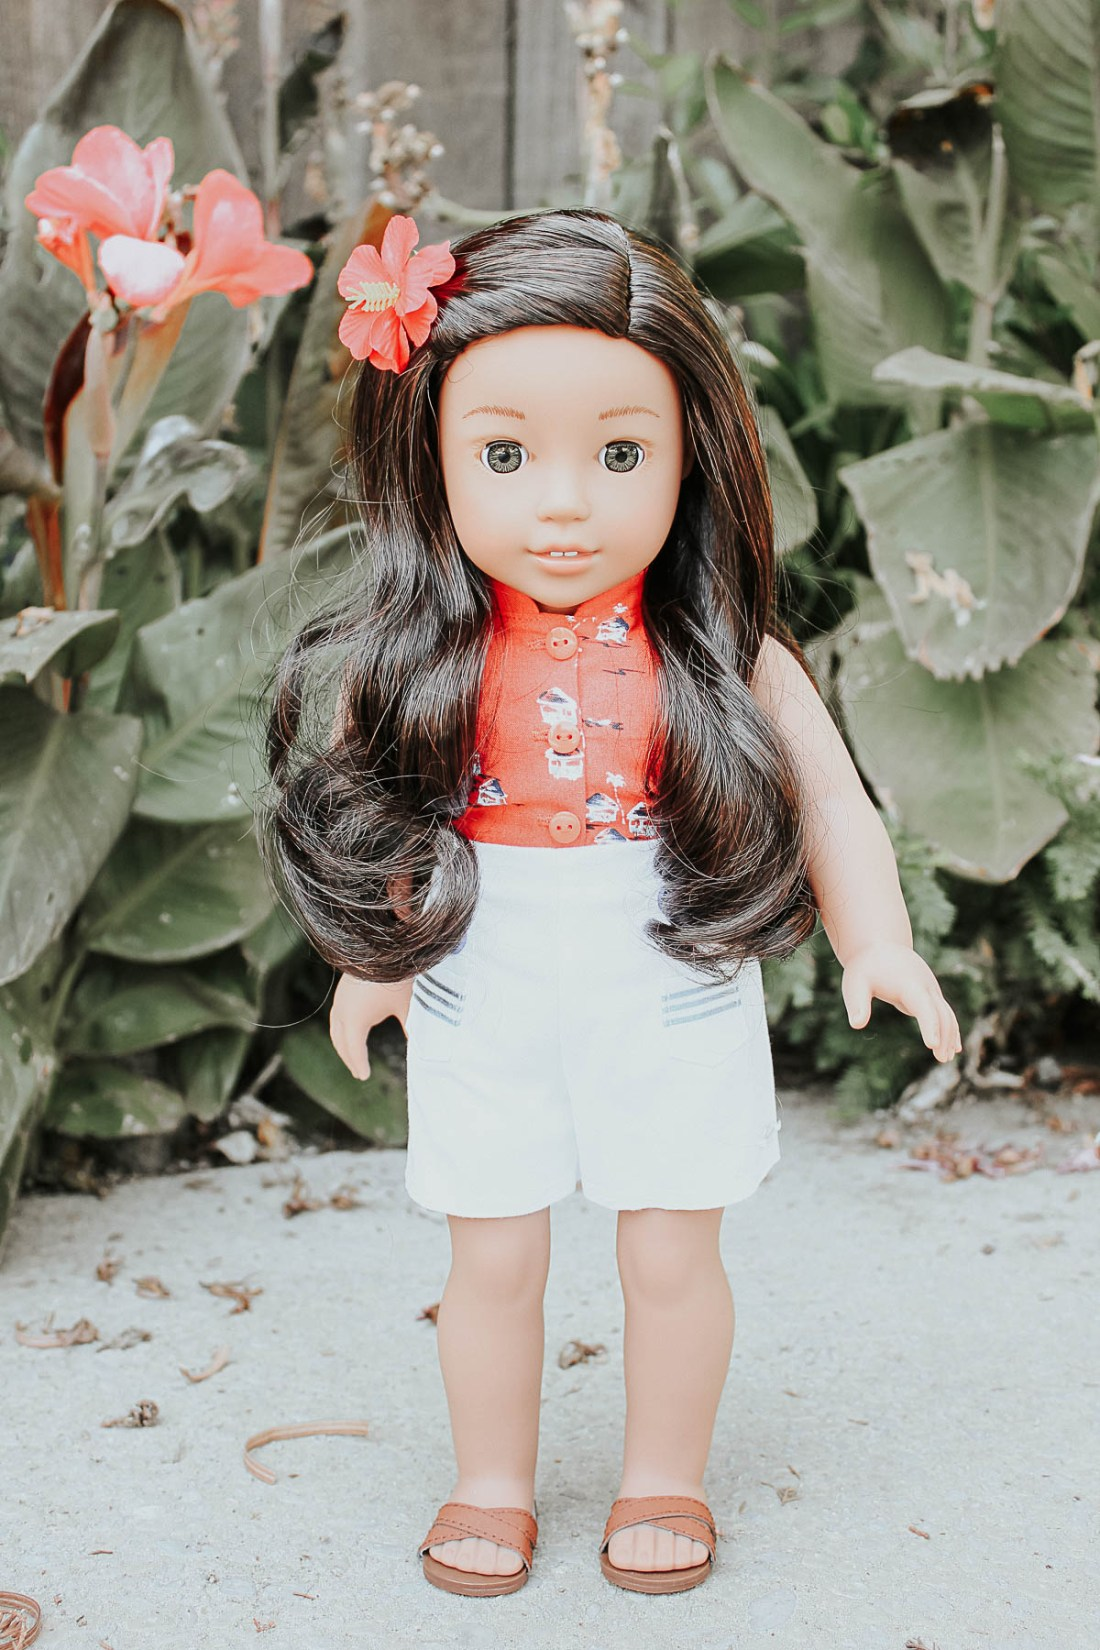 Nanea Mitchell American Girl Doll - Aloha Outfit & Accessories